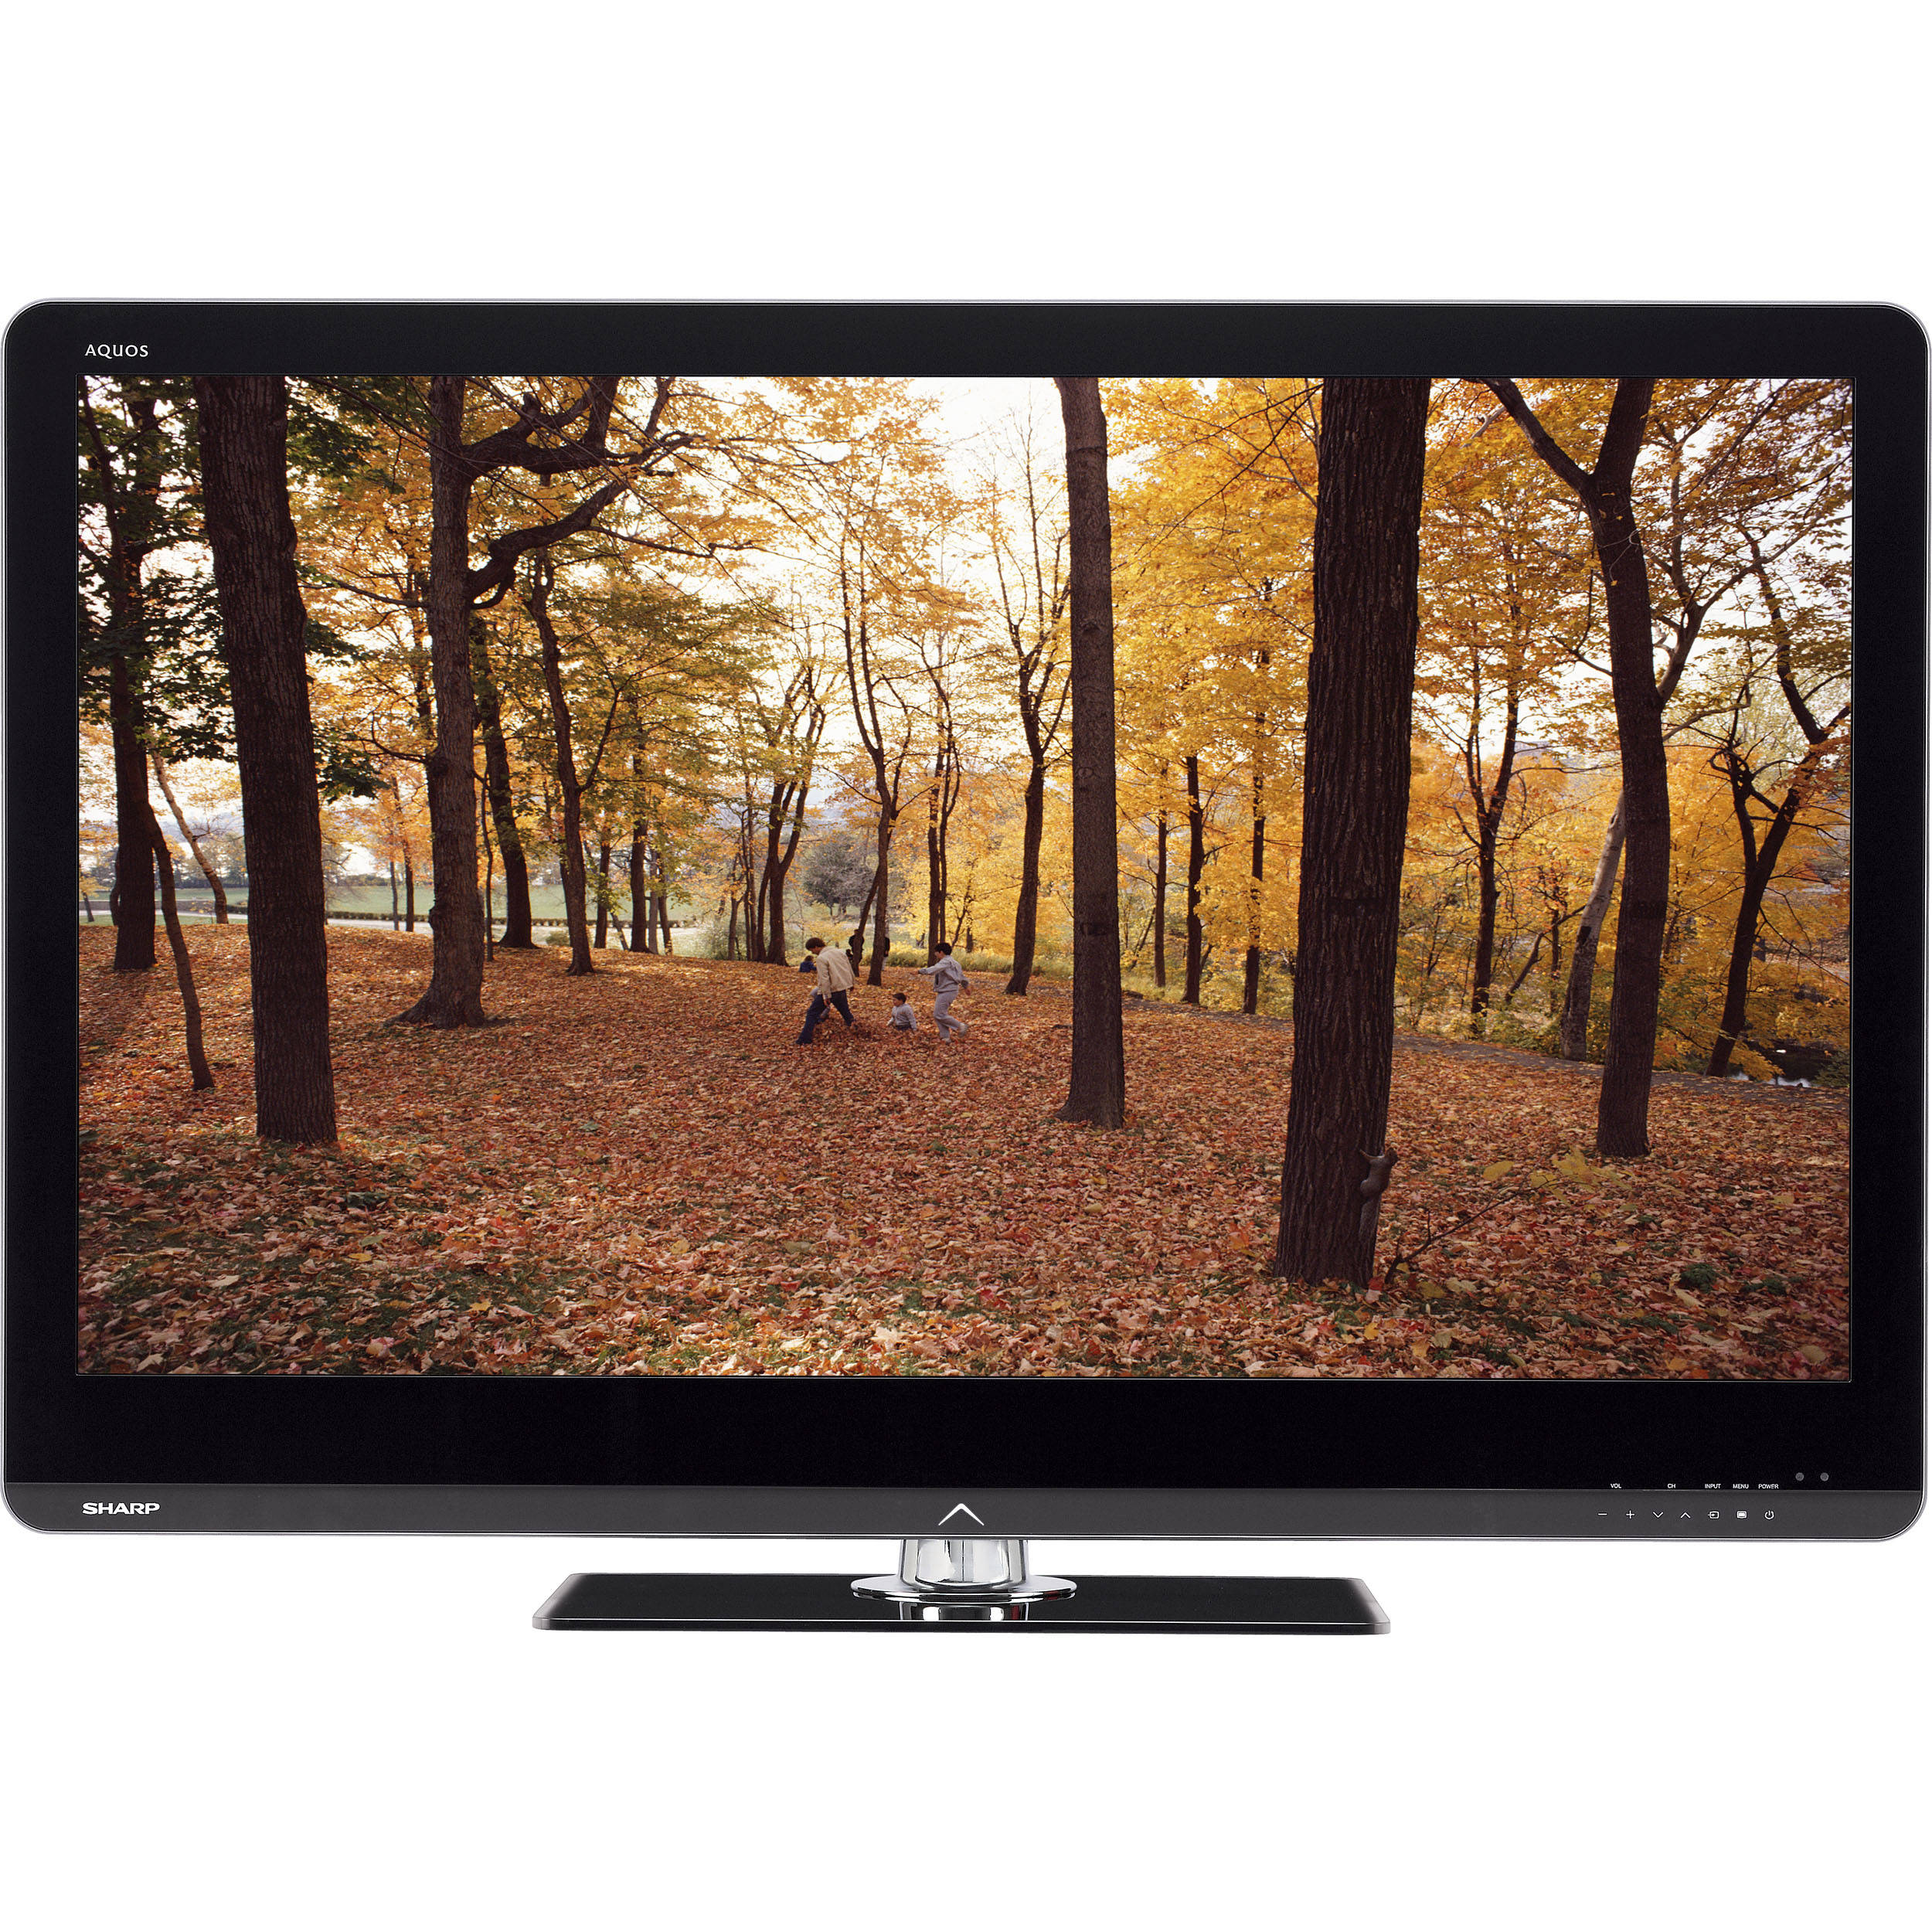 sharp lc 46le810un 46 1080p led tv lc 46le810un b h photo rh bhphotovideo com